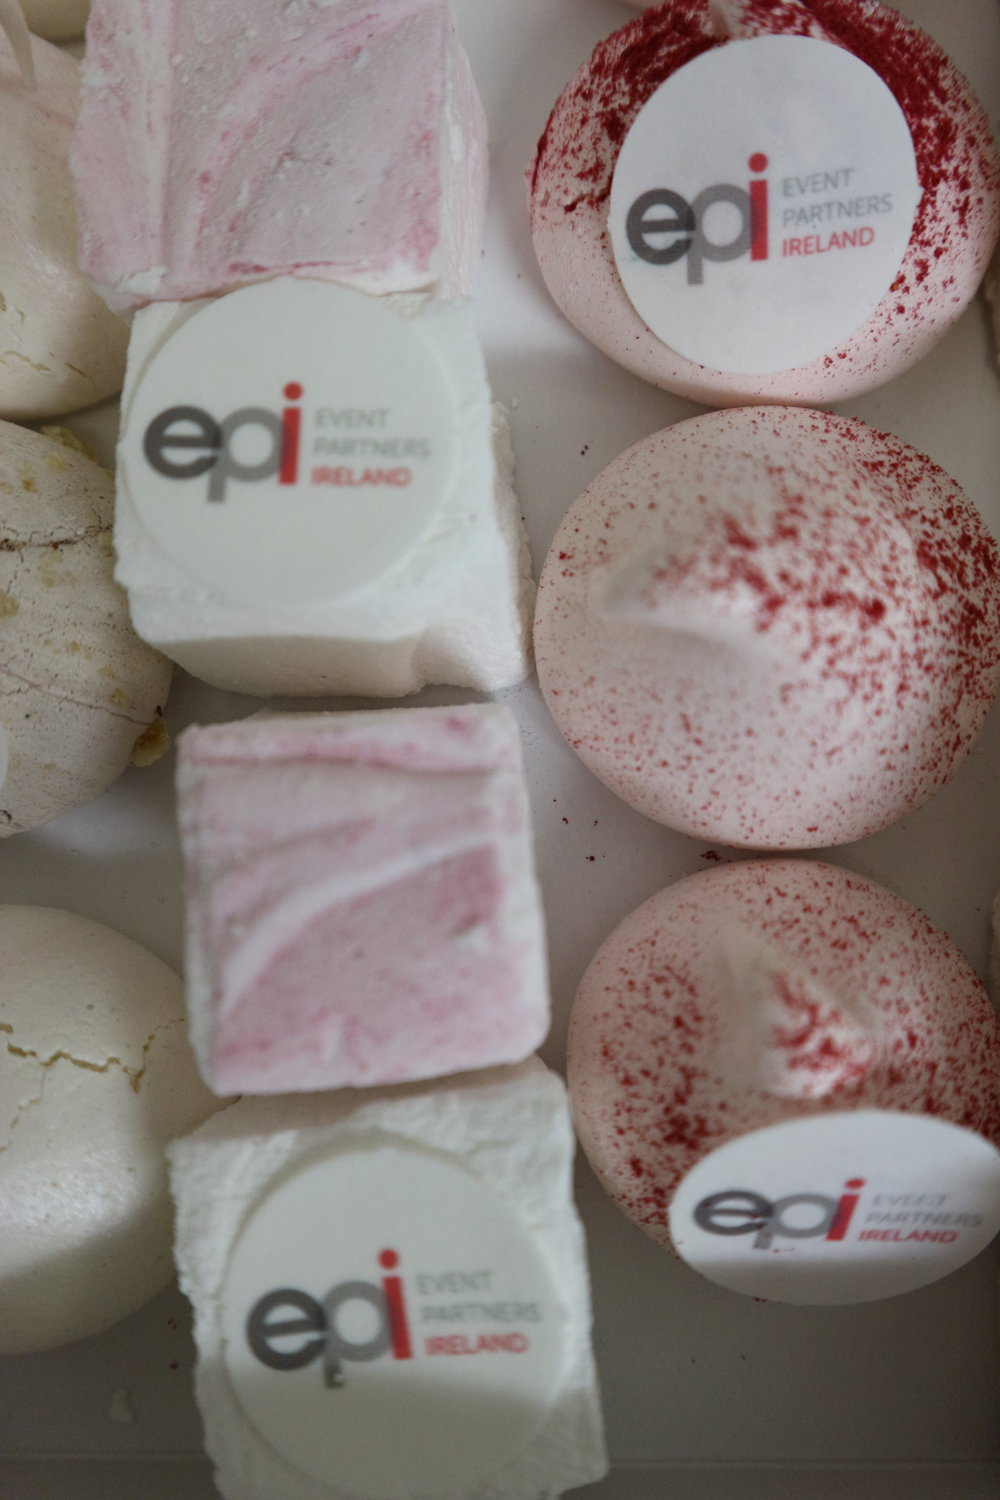 Branded marshmallows